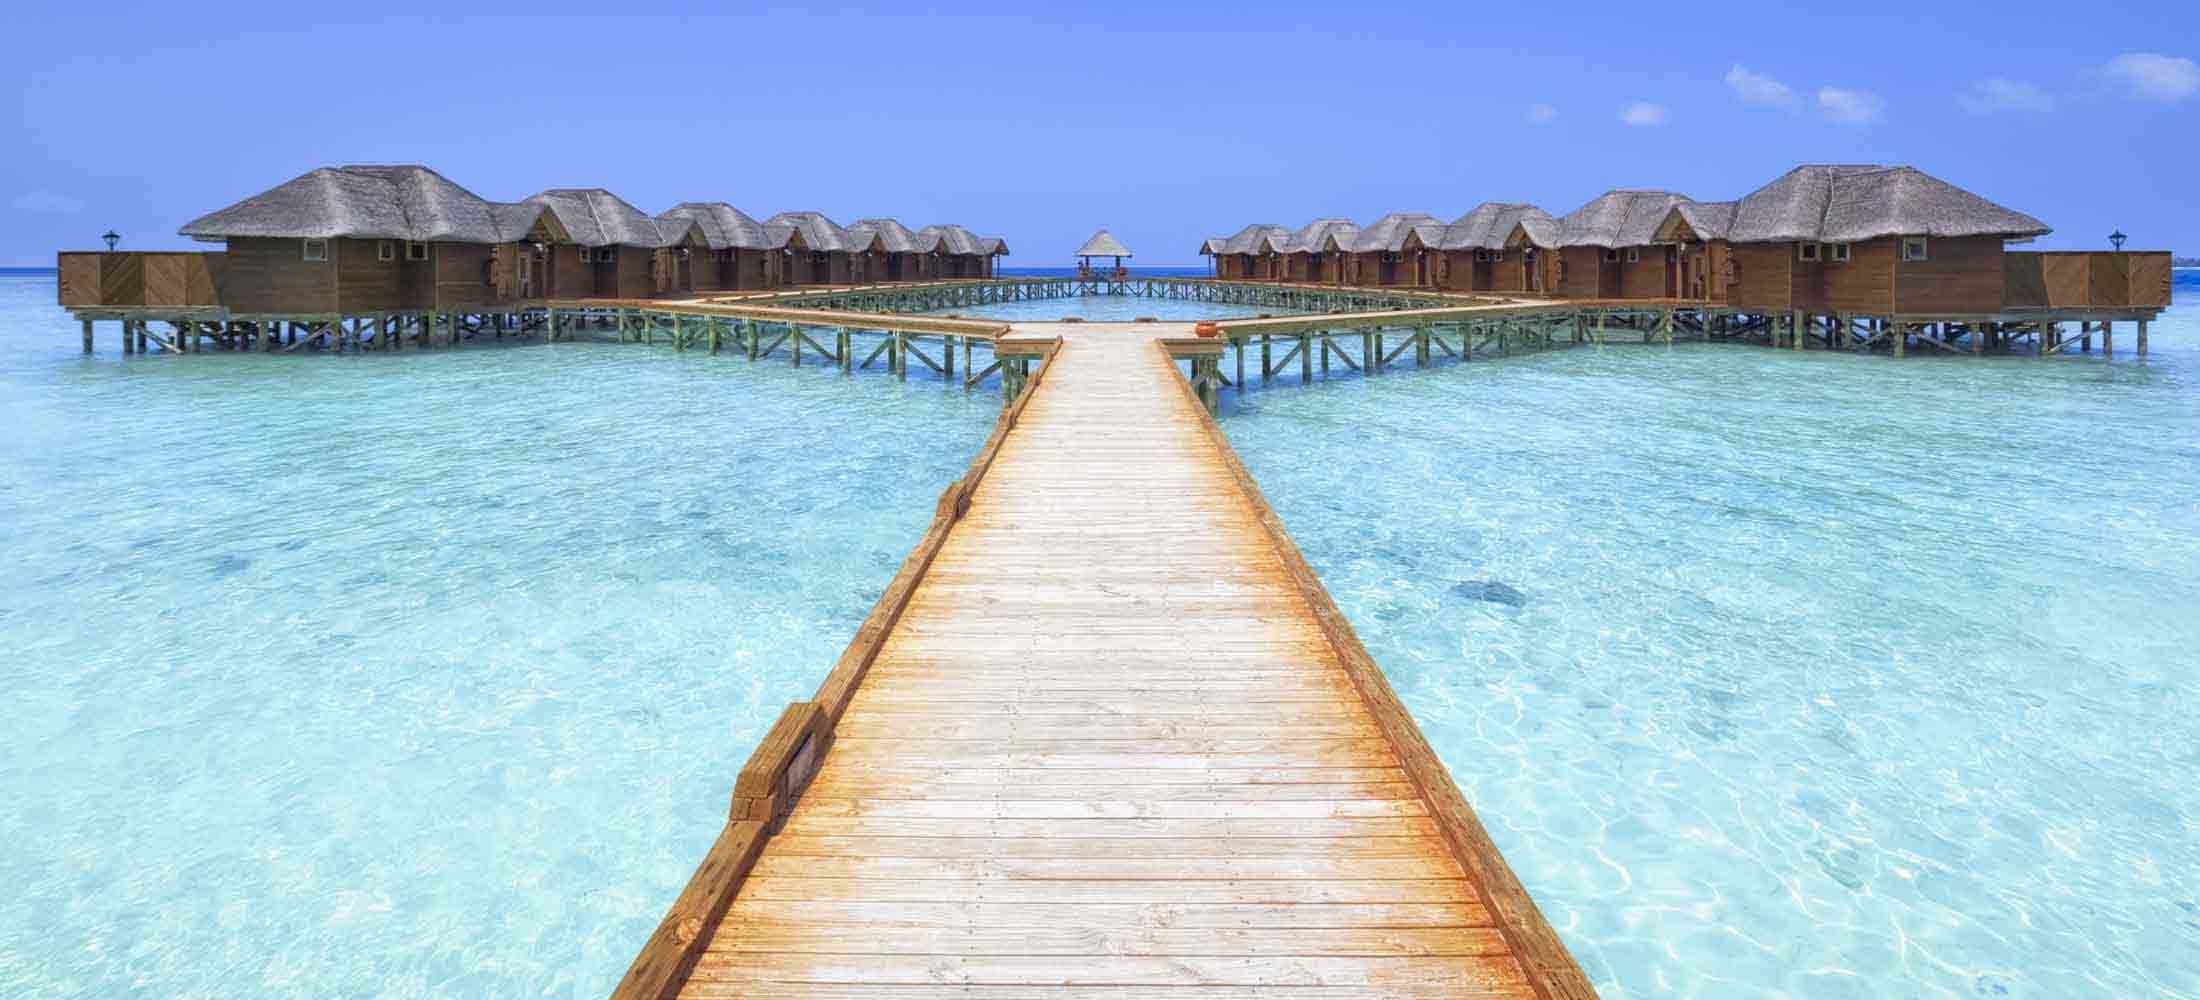 Overwater Bungalows Boardwalk